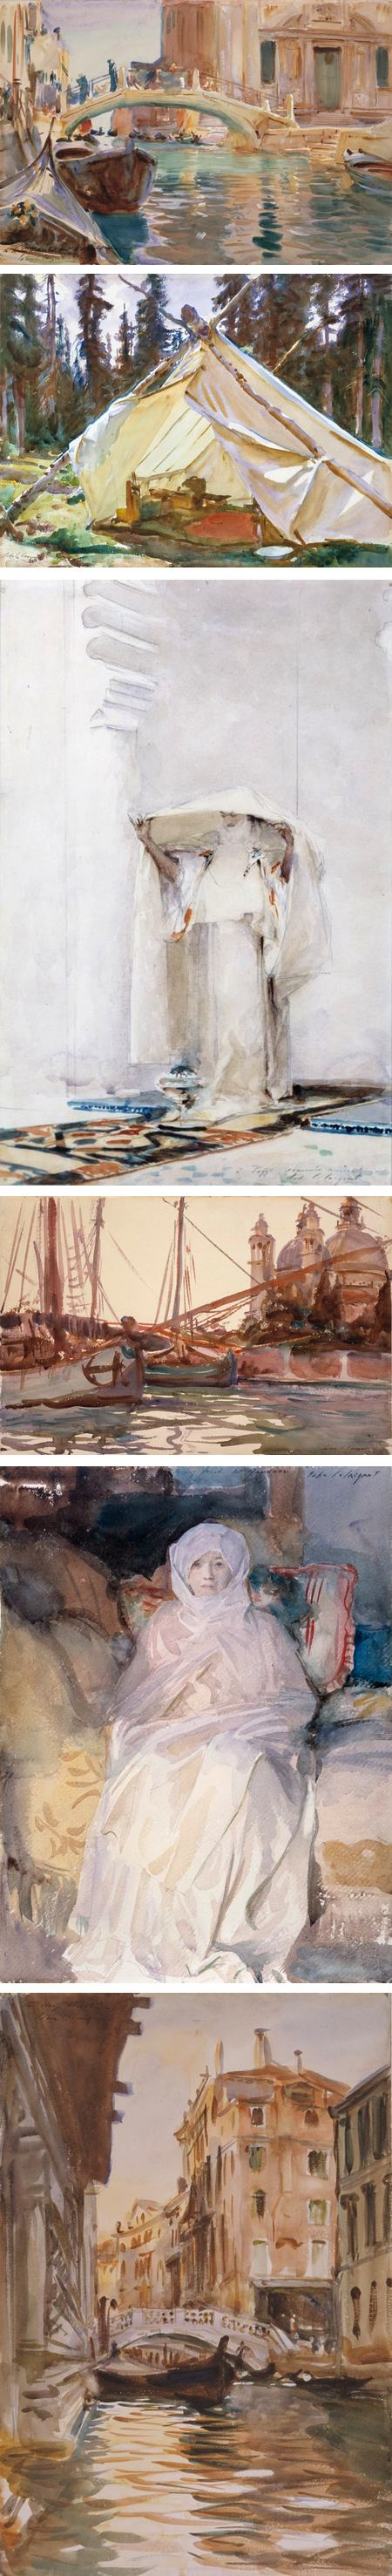 The Inscrutable Eye: Watercolors by John Singer Sargent in Isabella Stewart Gardner's Collection